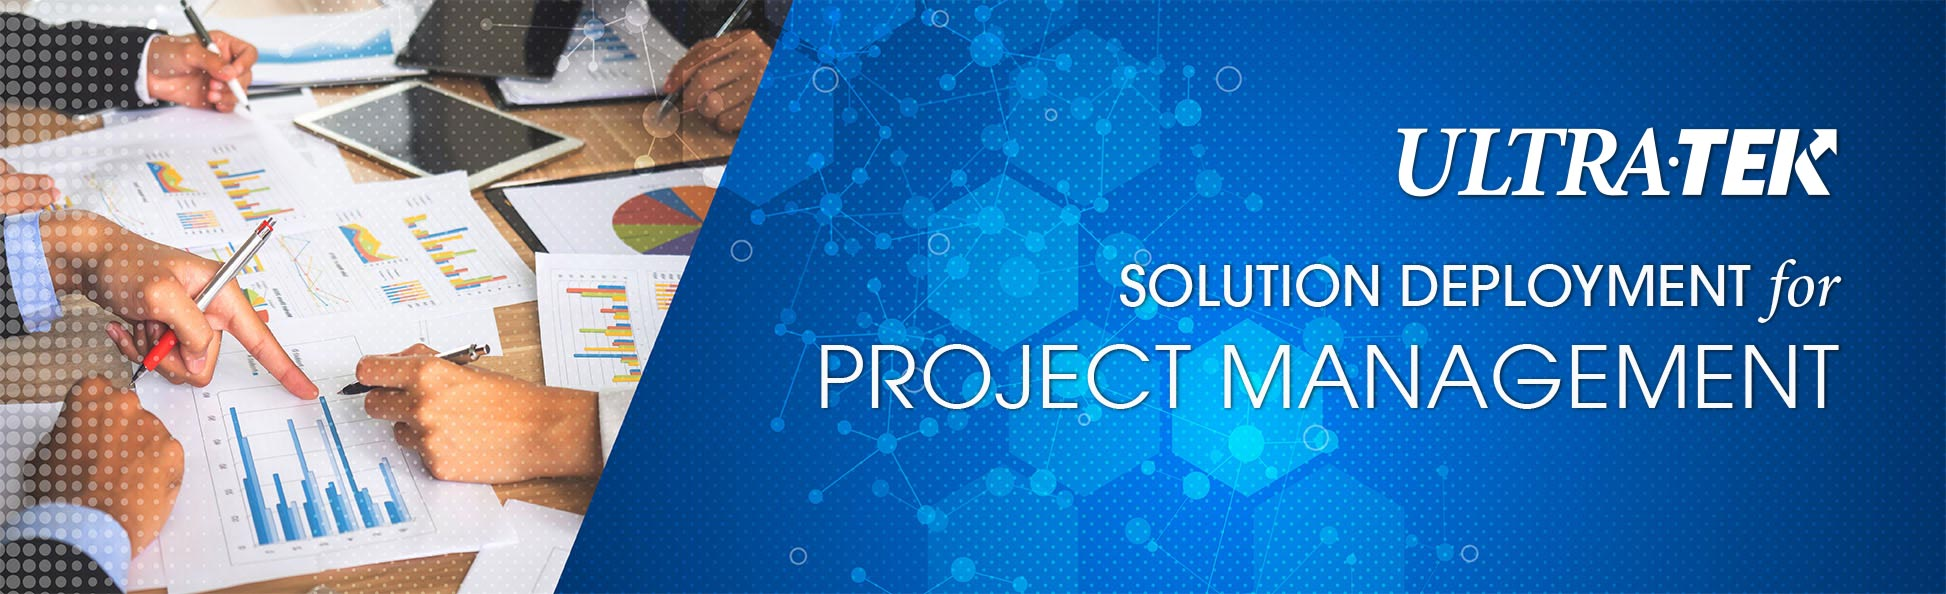 Solution Deployment for Project Management